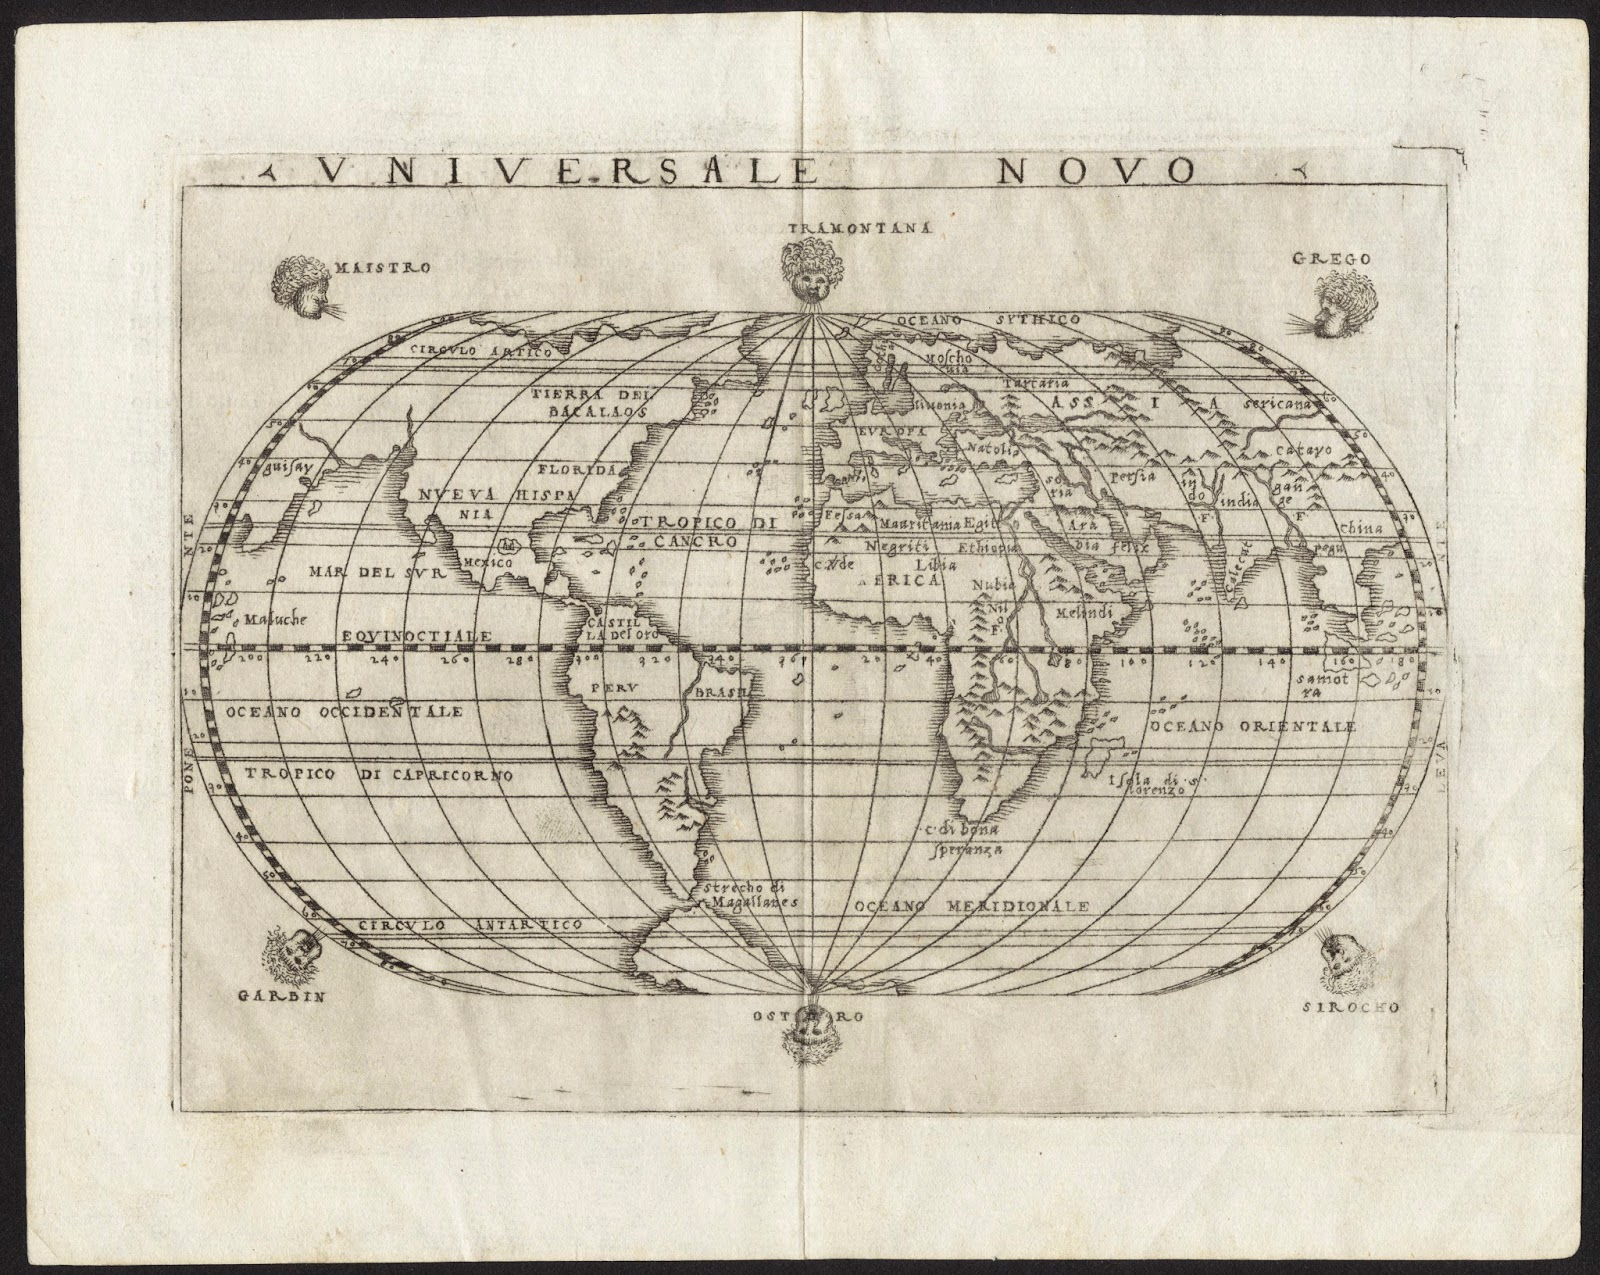 Birkhall\'s Miscellany: EARTH HOAX; What Did The Old Maps Depict?